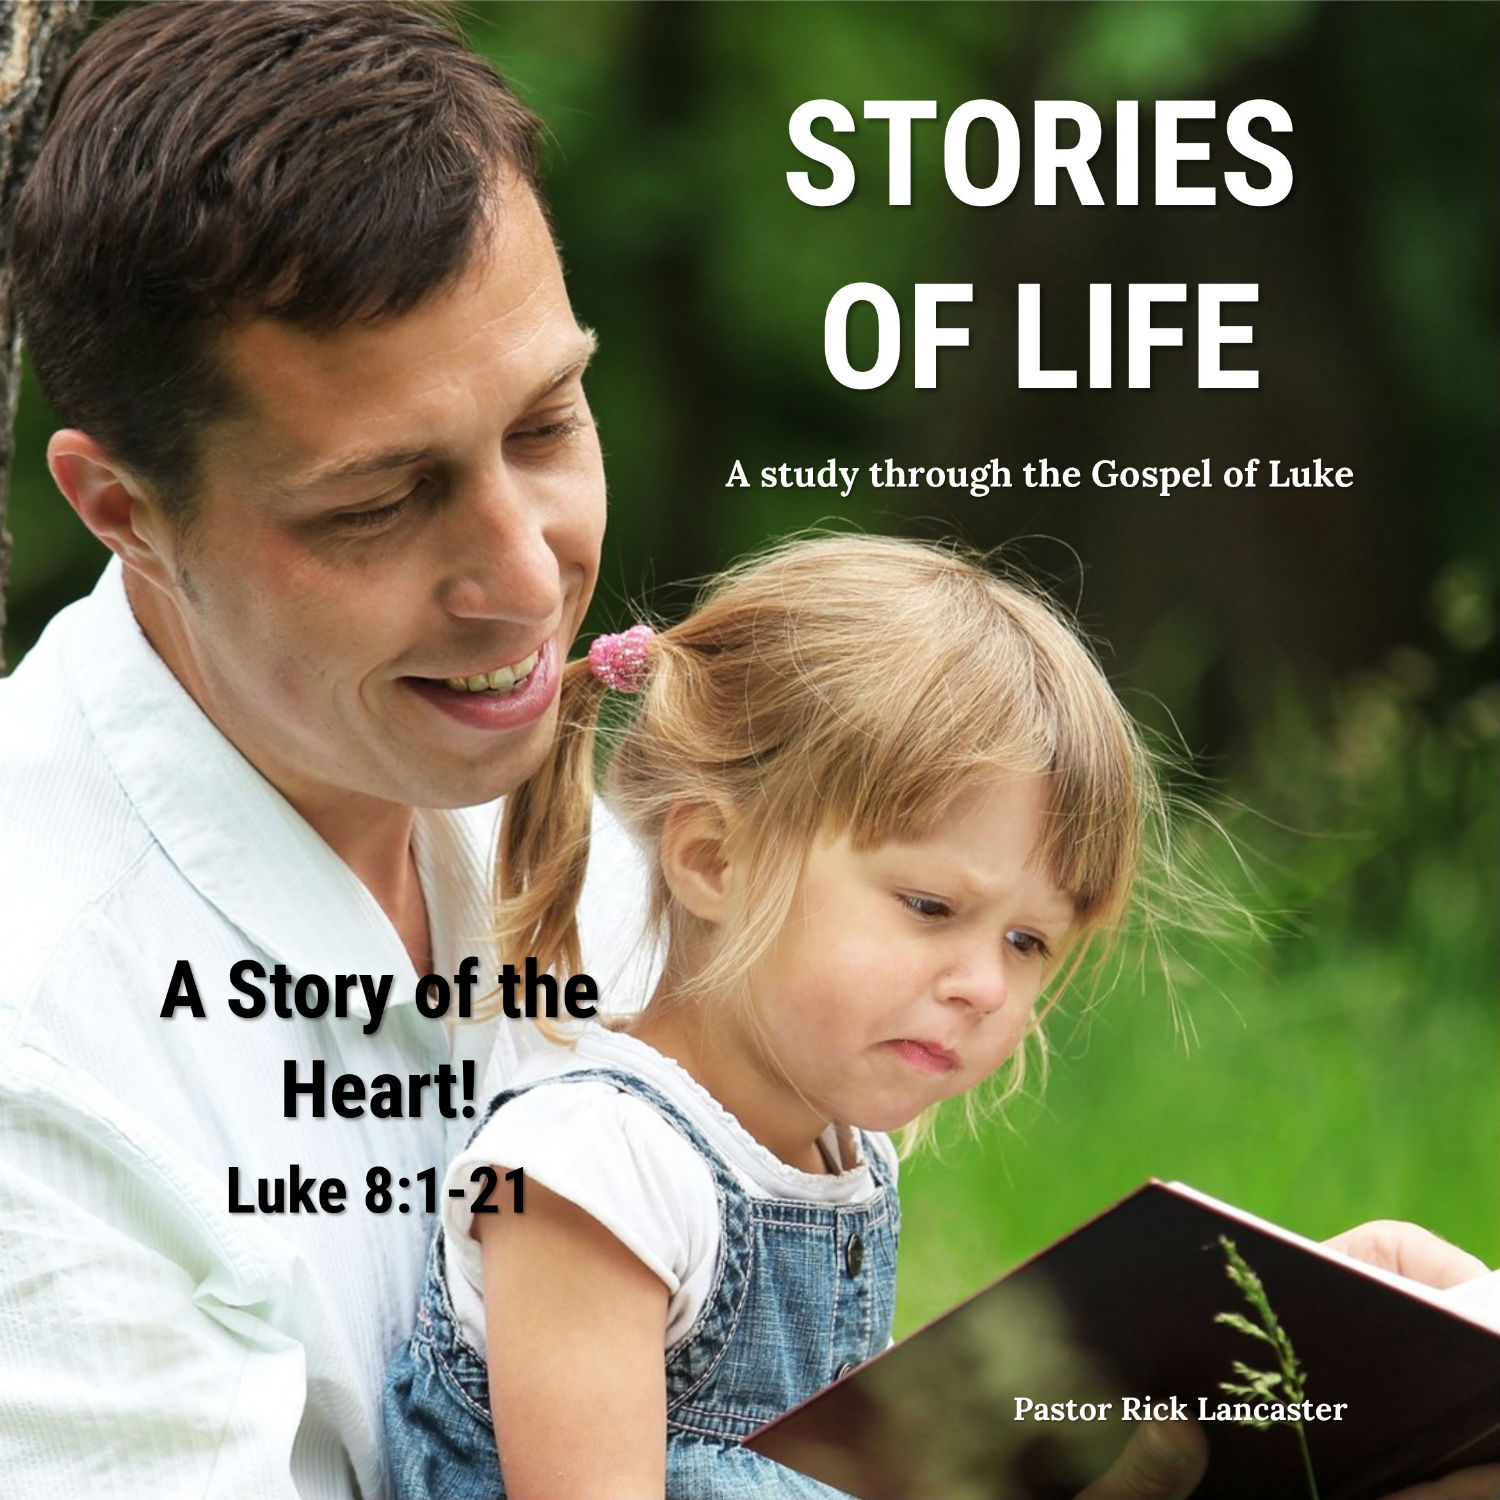 The Story Of The Heart! - Luke 8:1-21